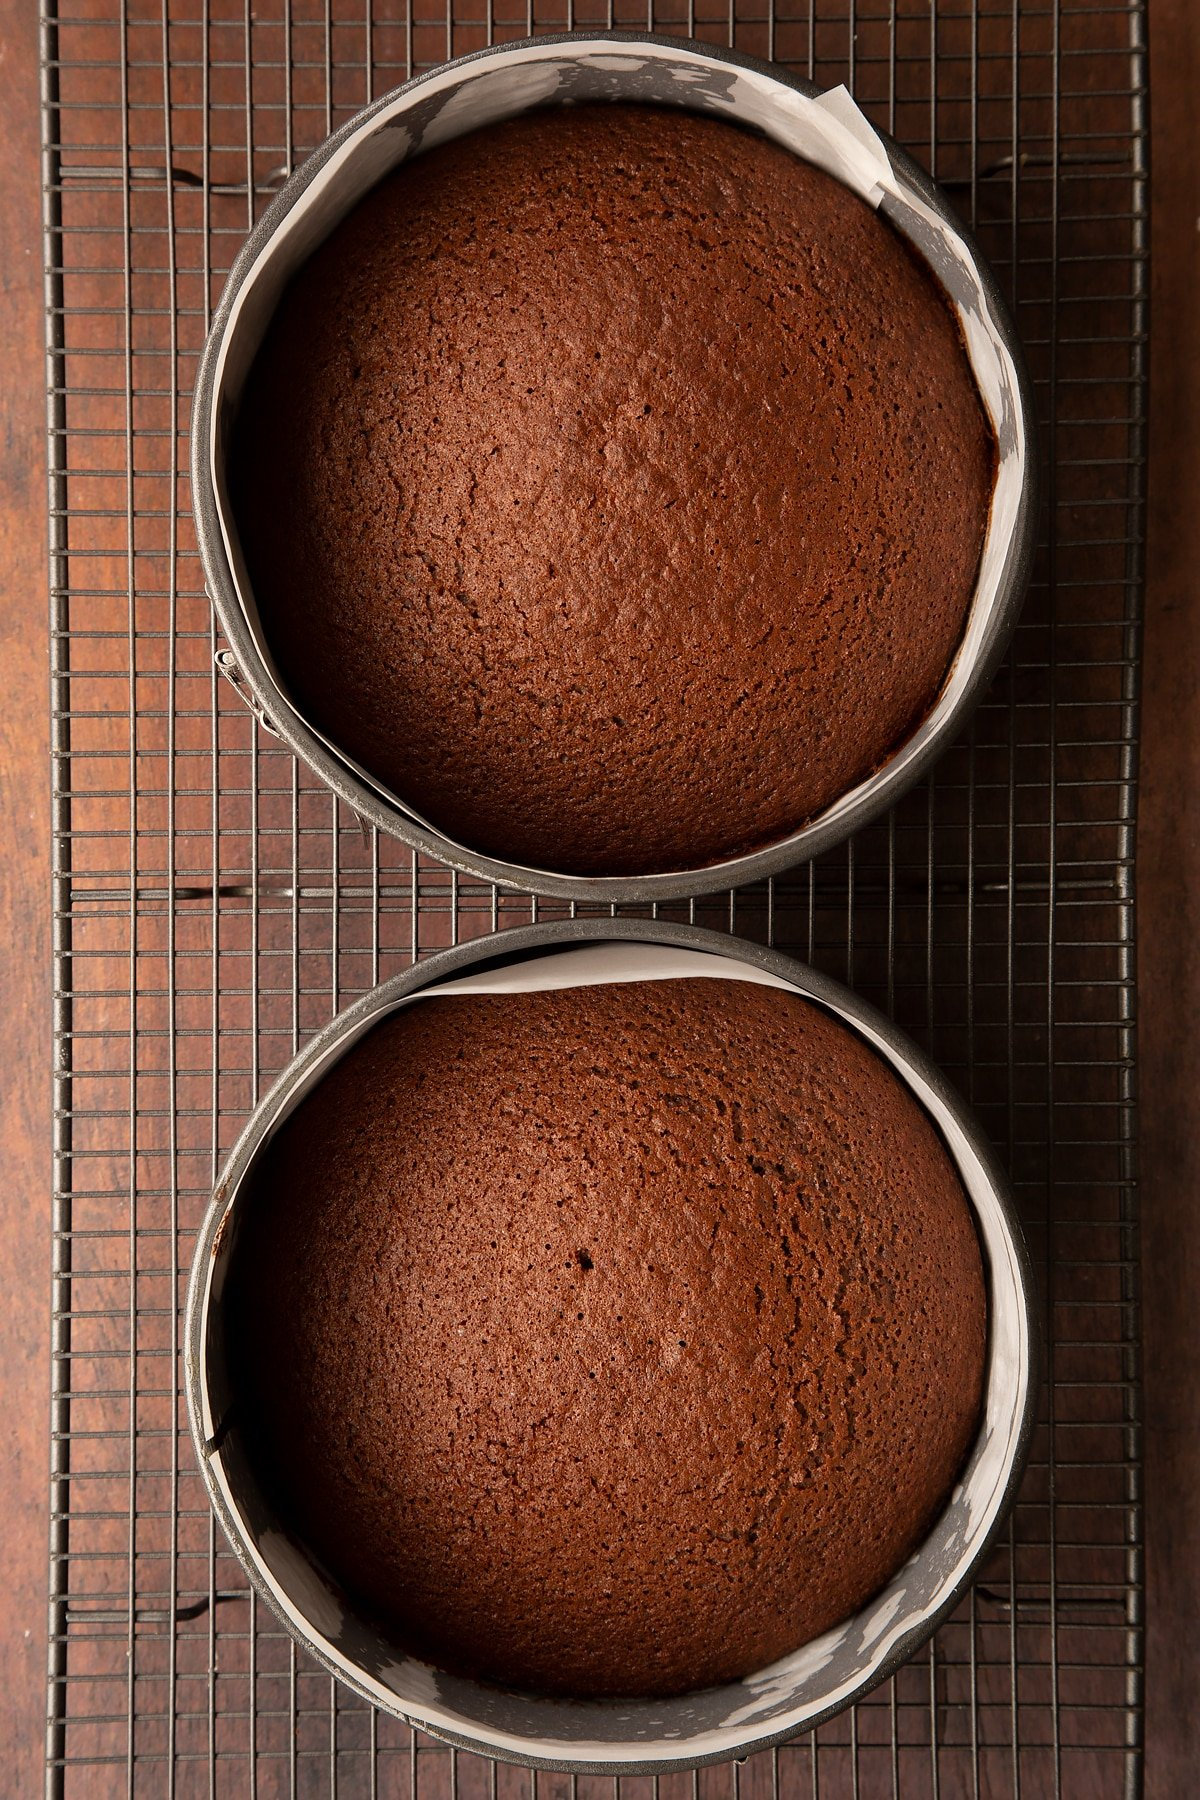 Chocolate cakes in a two lined baking tins on a wire rack.